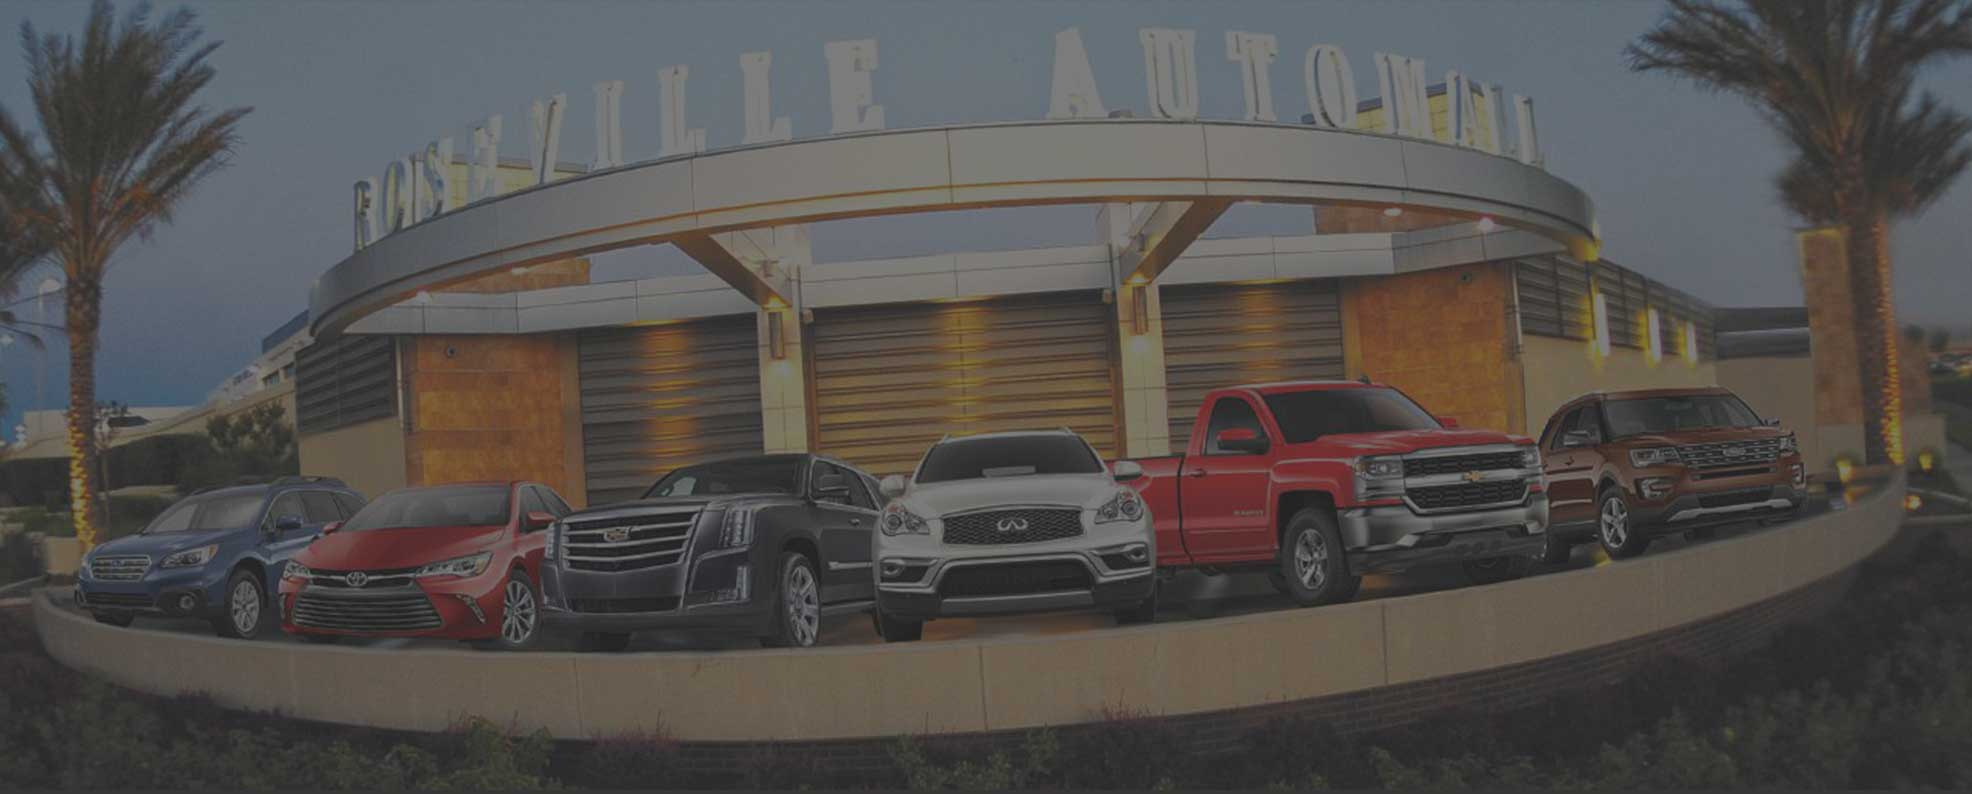 Roseville Automall about us background